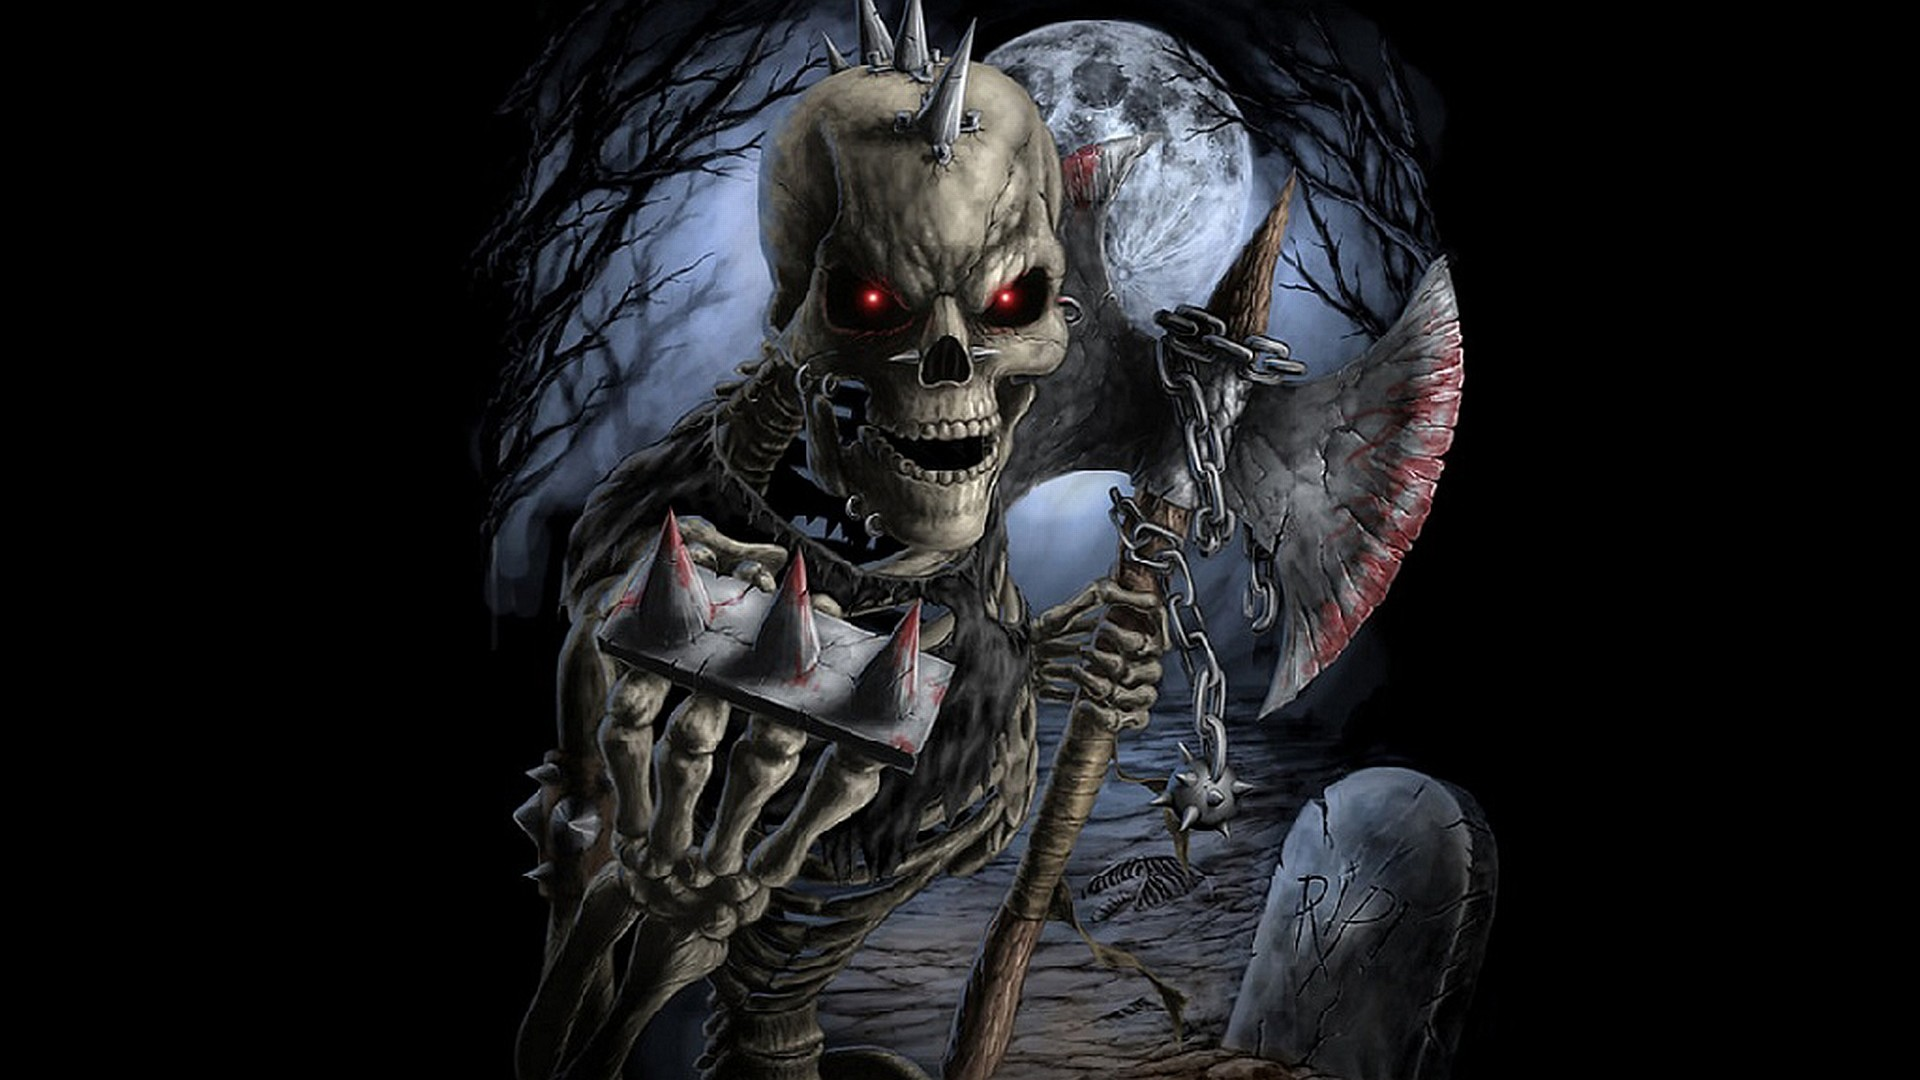 Scary skeleton wallpaper 66 images - Scary skull backgrounds ...